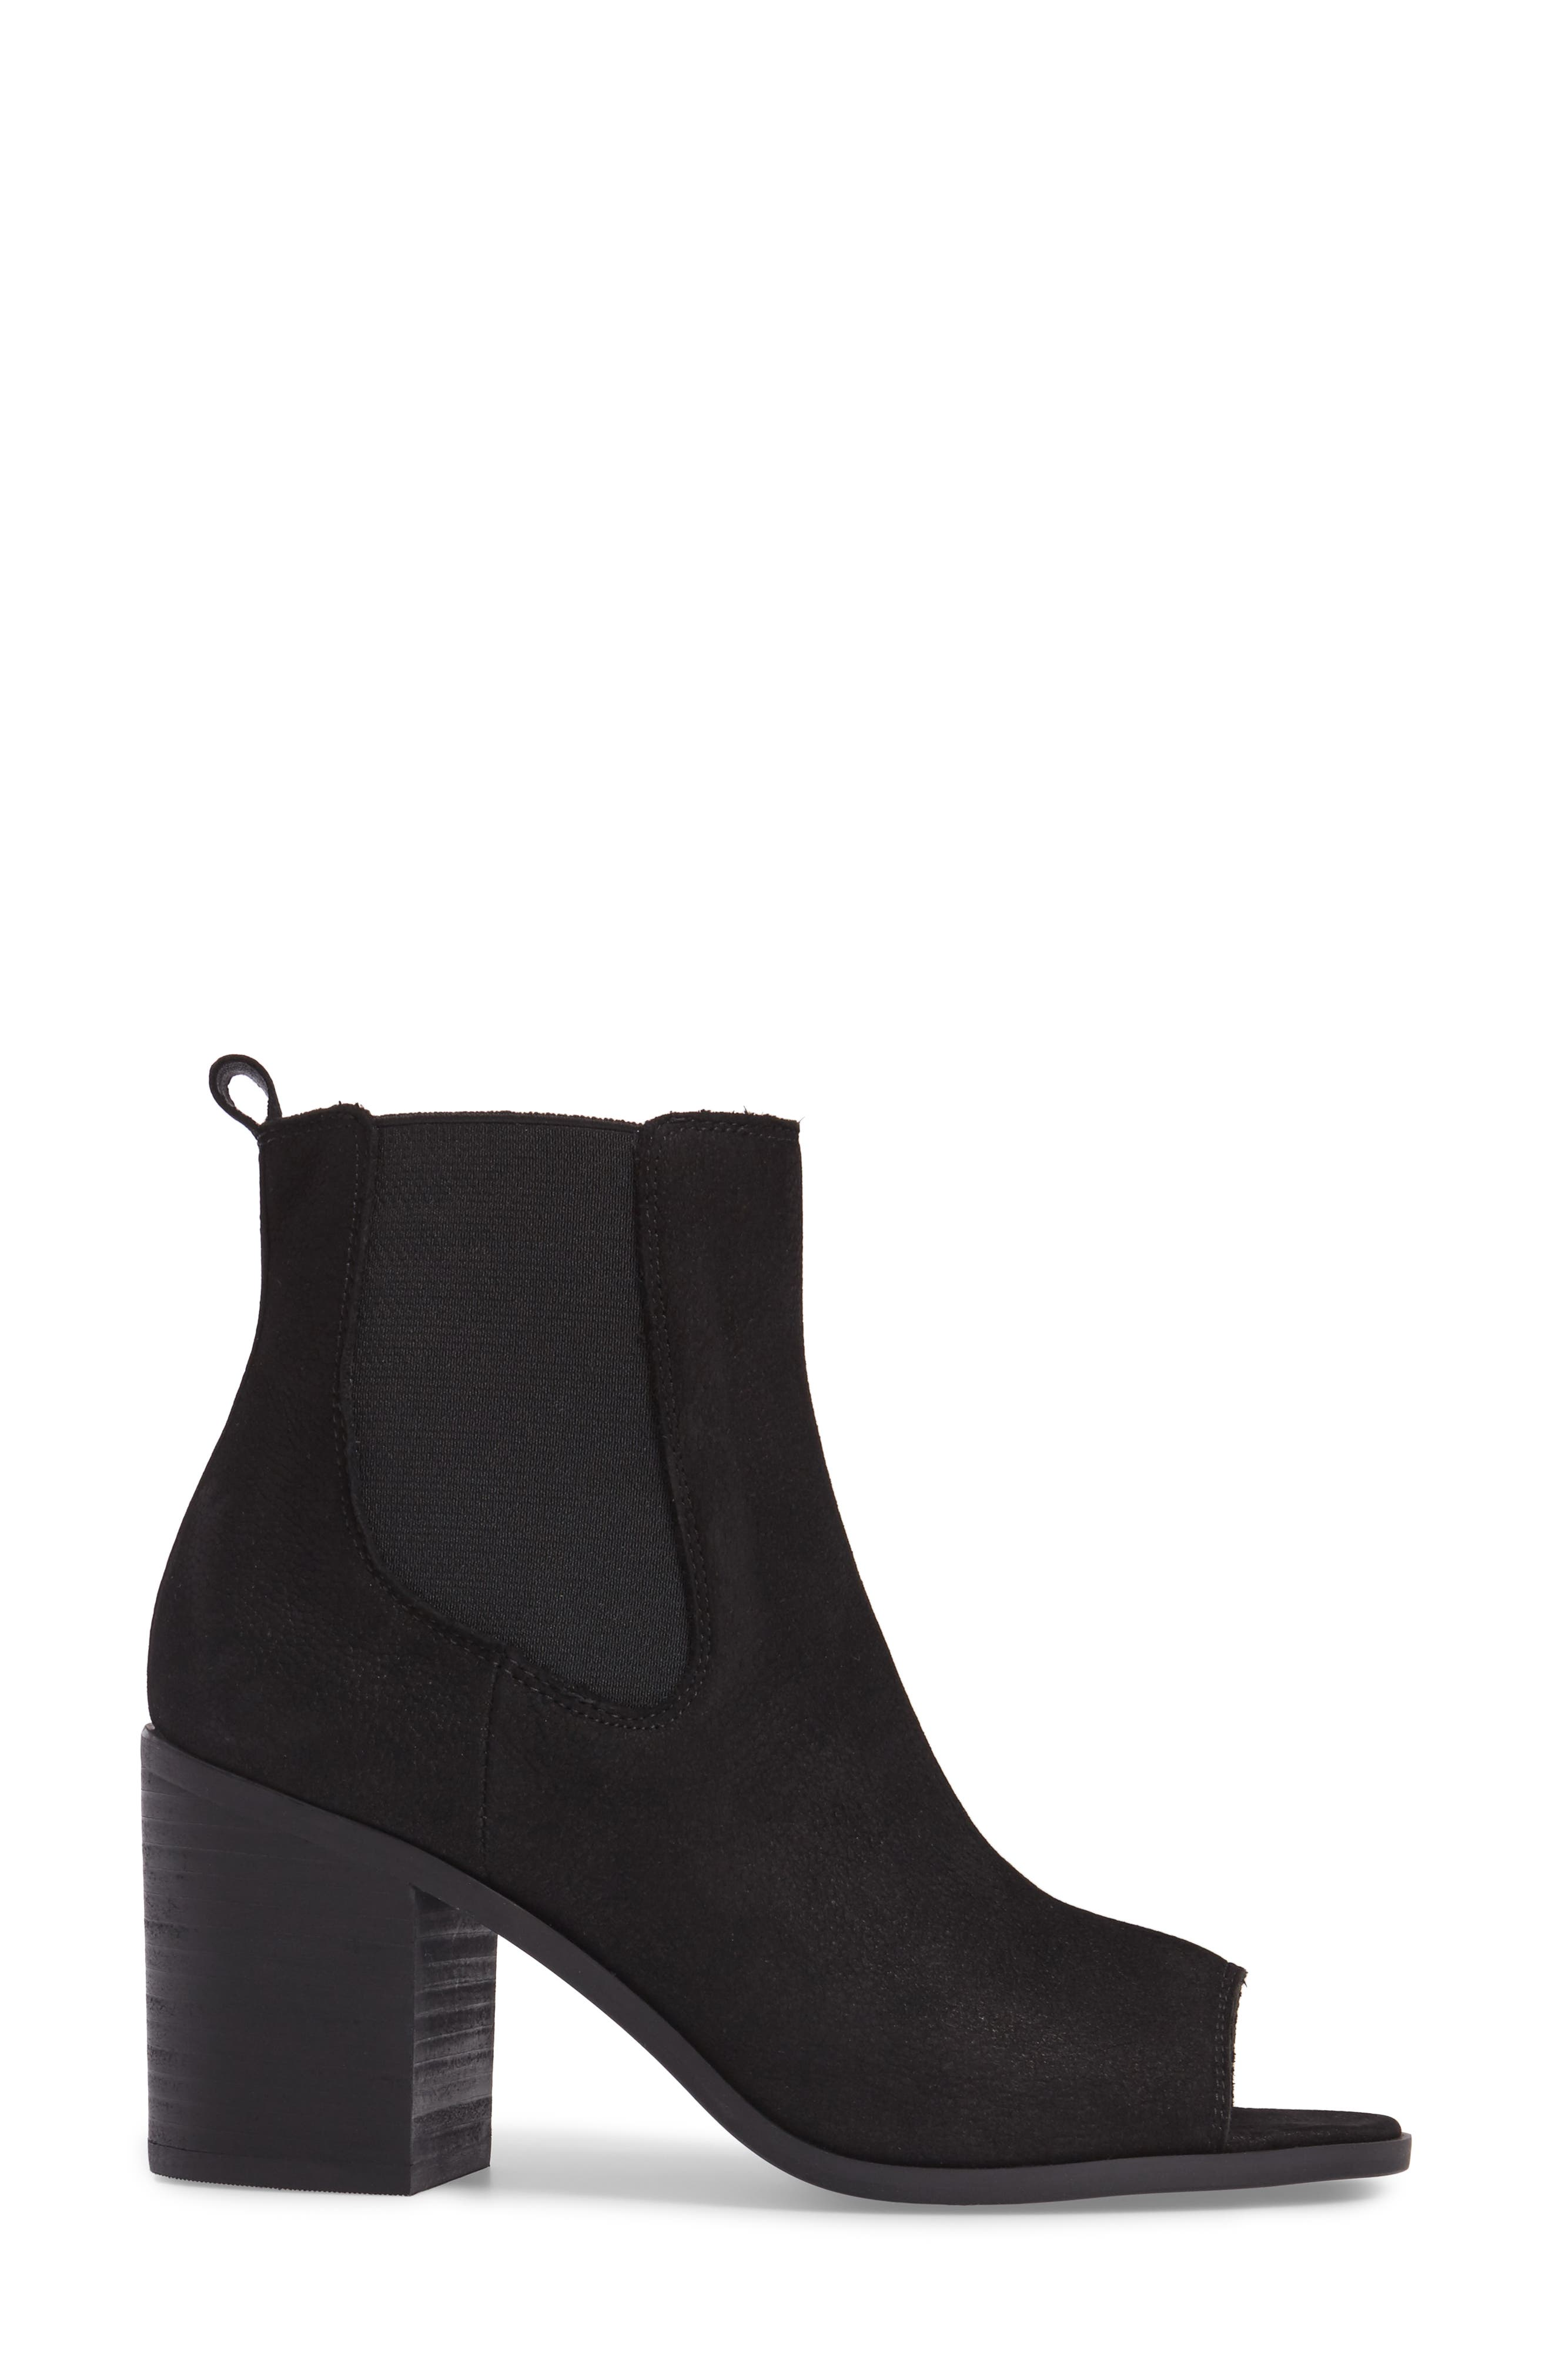 Kassidy Open Toe Chelsea Bootie,                             Alternate thumbnail 3, color,                             Black Leather